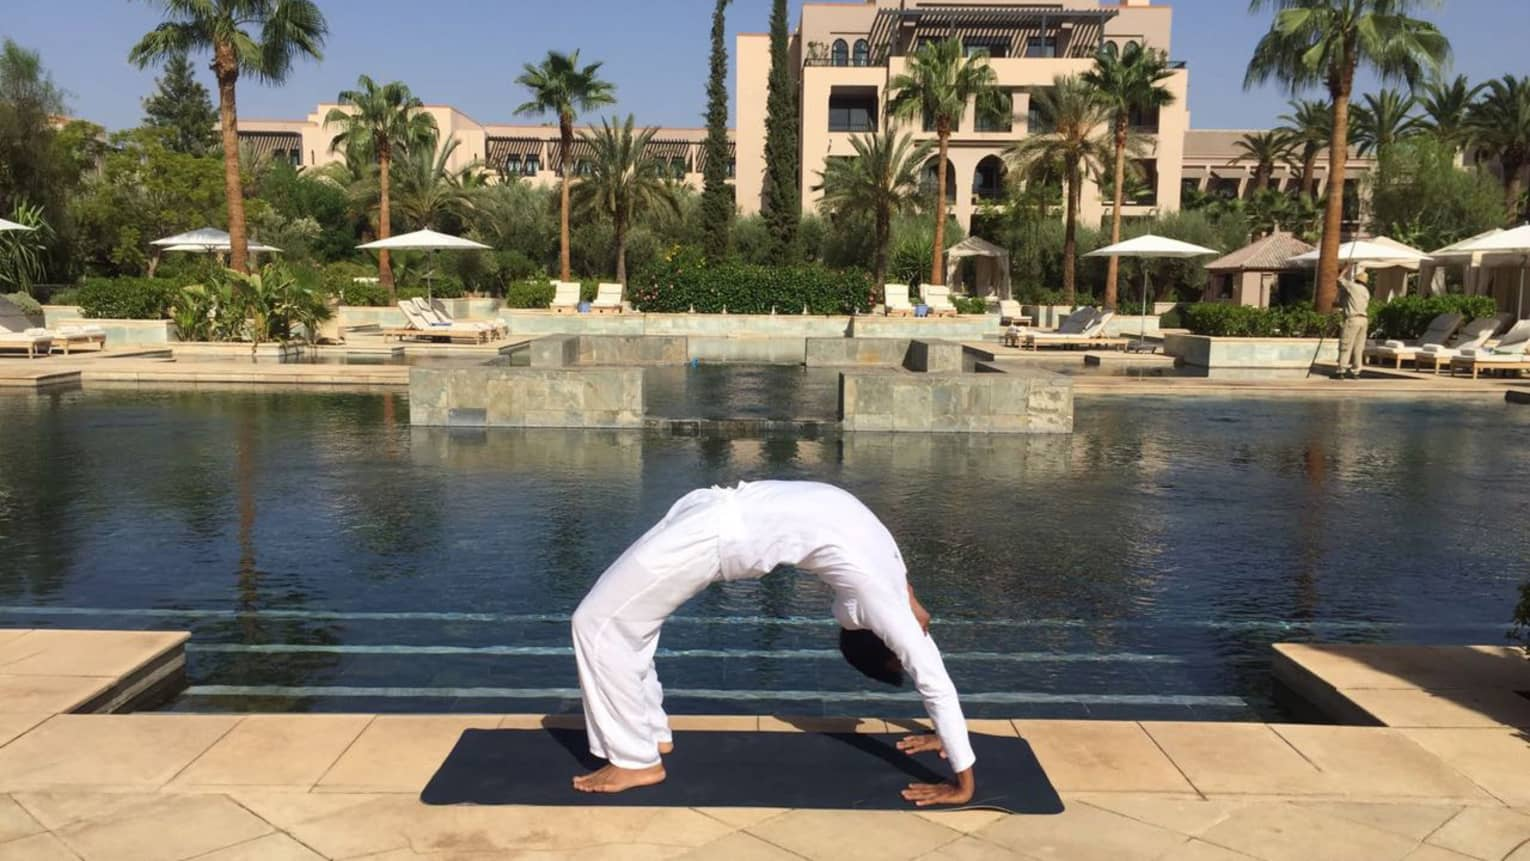 Person wearing white poses in arched yoga bridge pose beside outdoor swimming pool